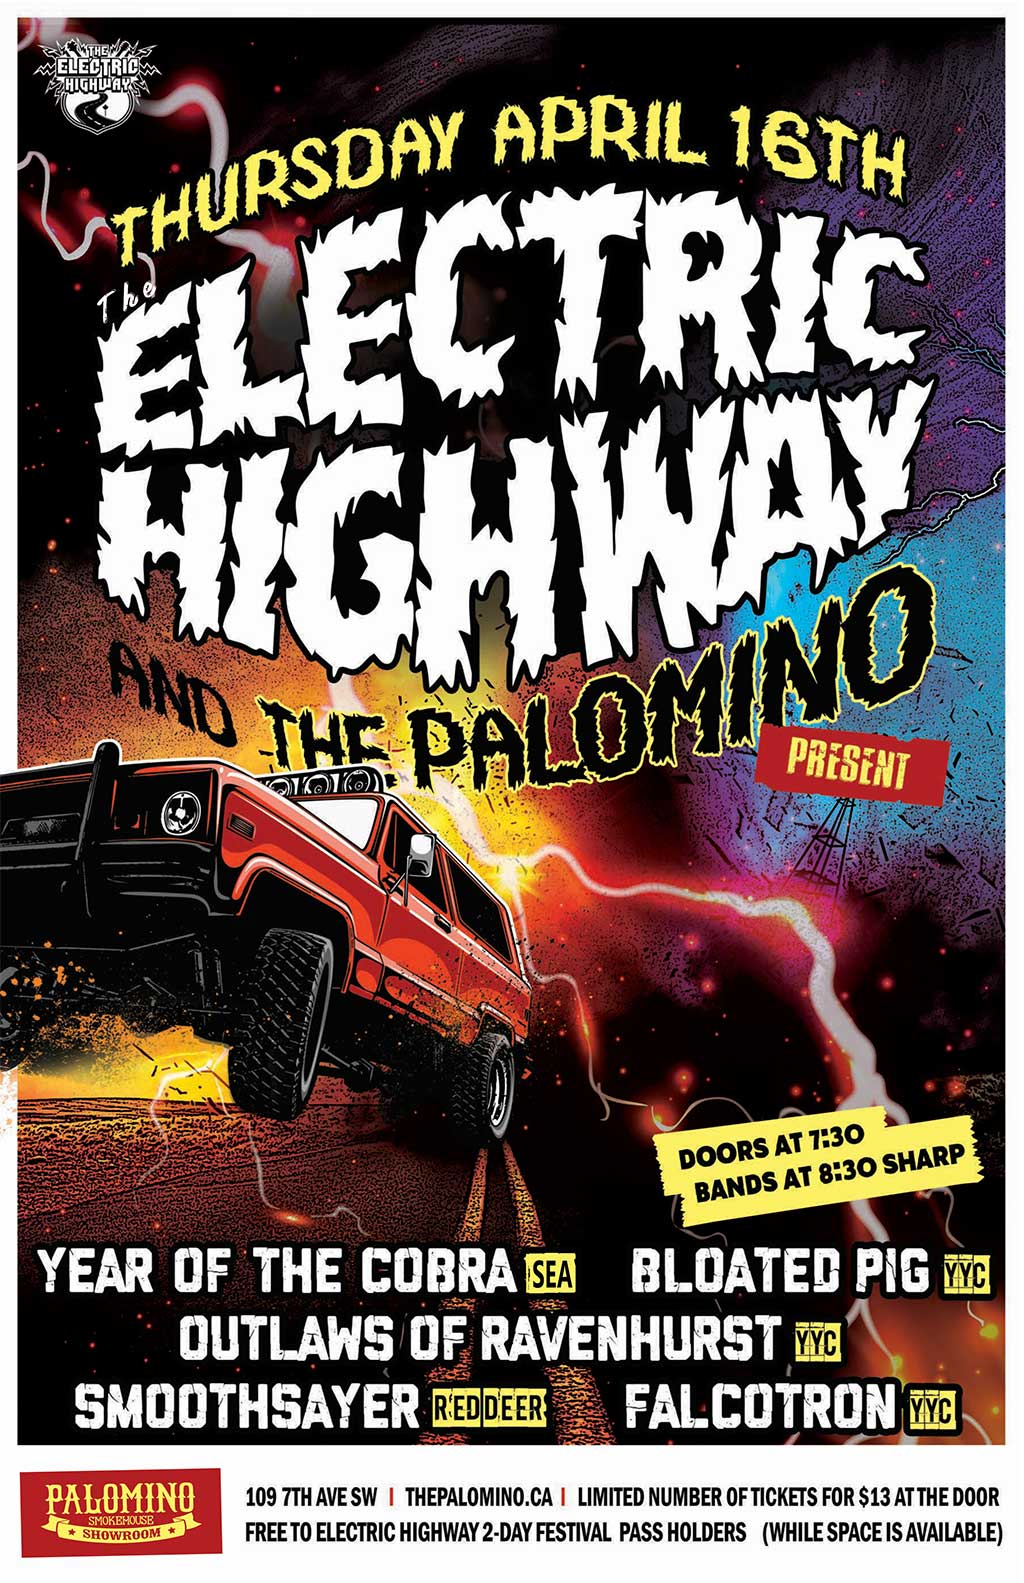 The Electric Highway Festival Kickoff Party Poster